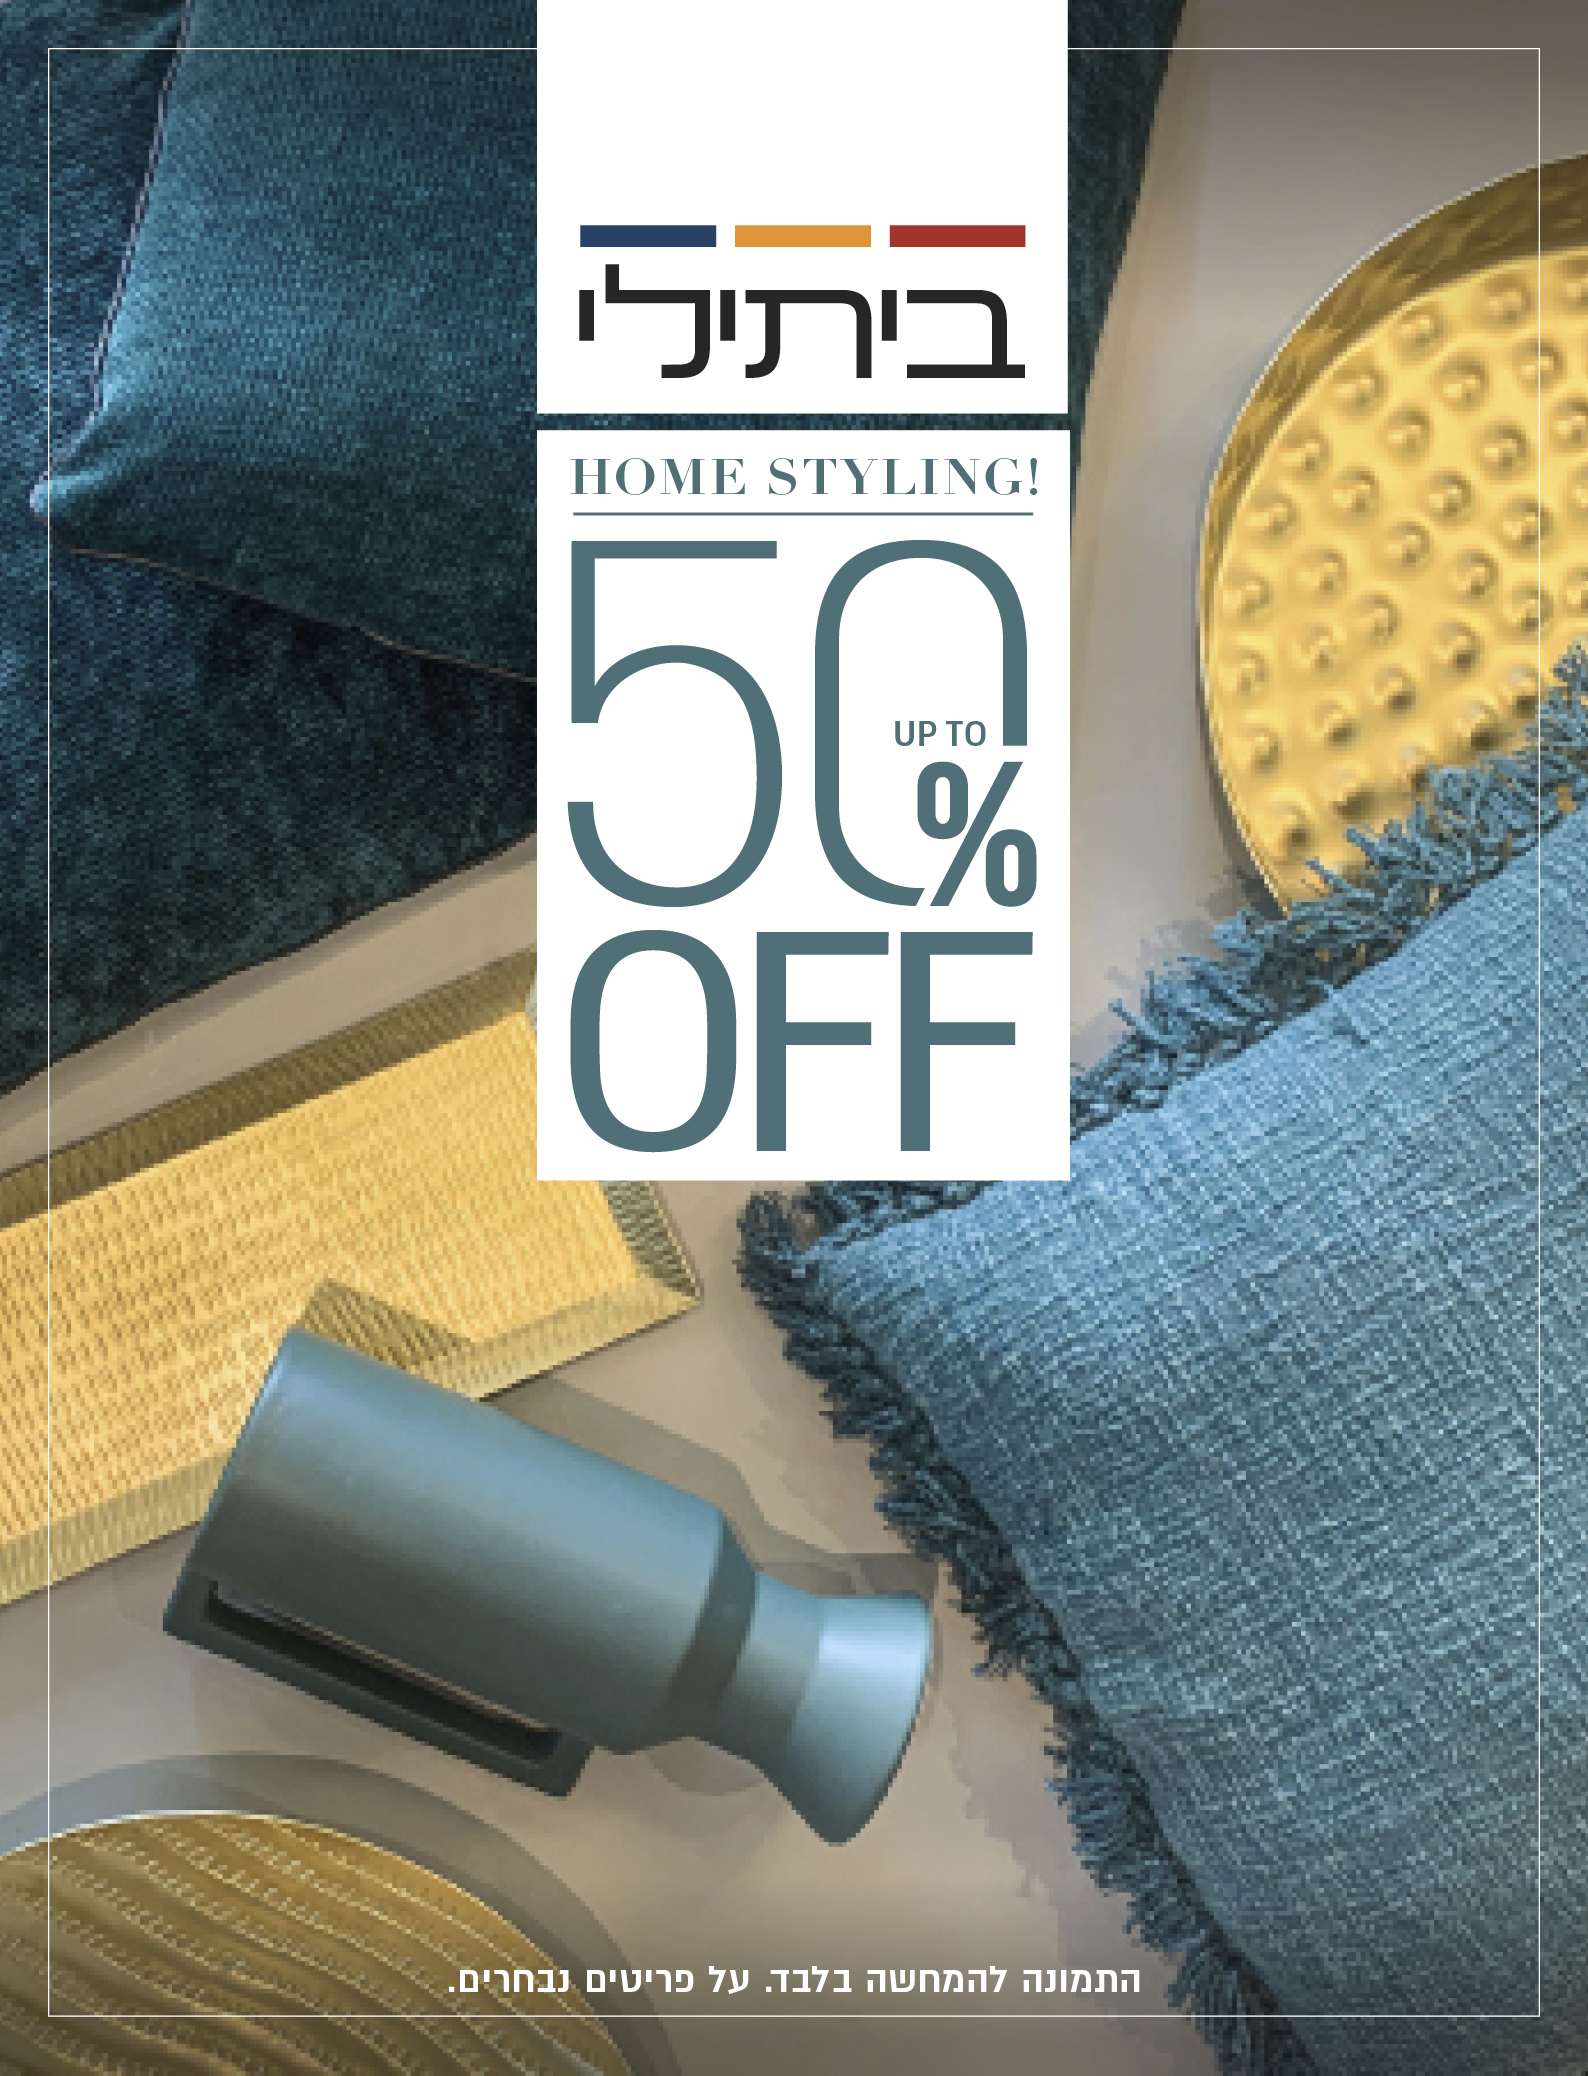 home styling up to 50% off